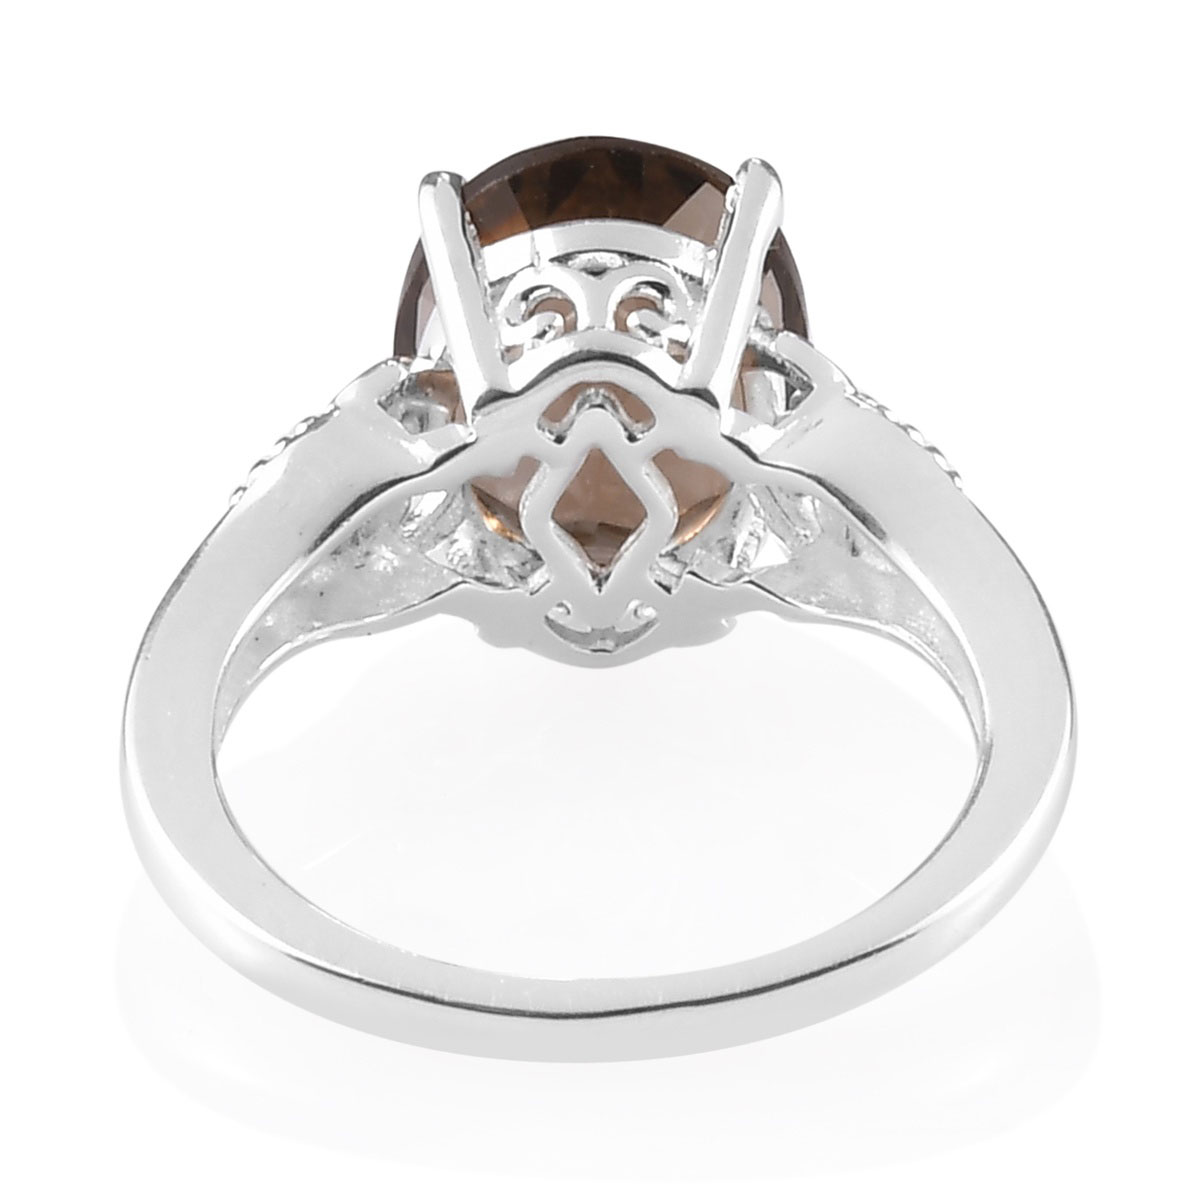 Solitaire Ring 925 Sterling Silver Round Smoky Quartz Gift Jewelry for Women Size 10 Ct 2.2